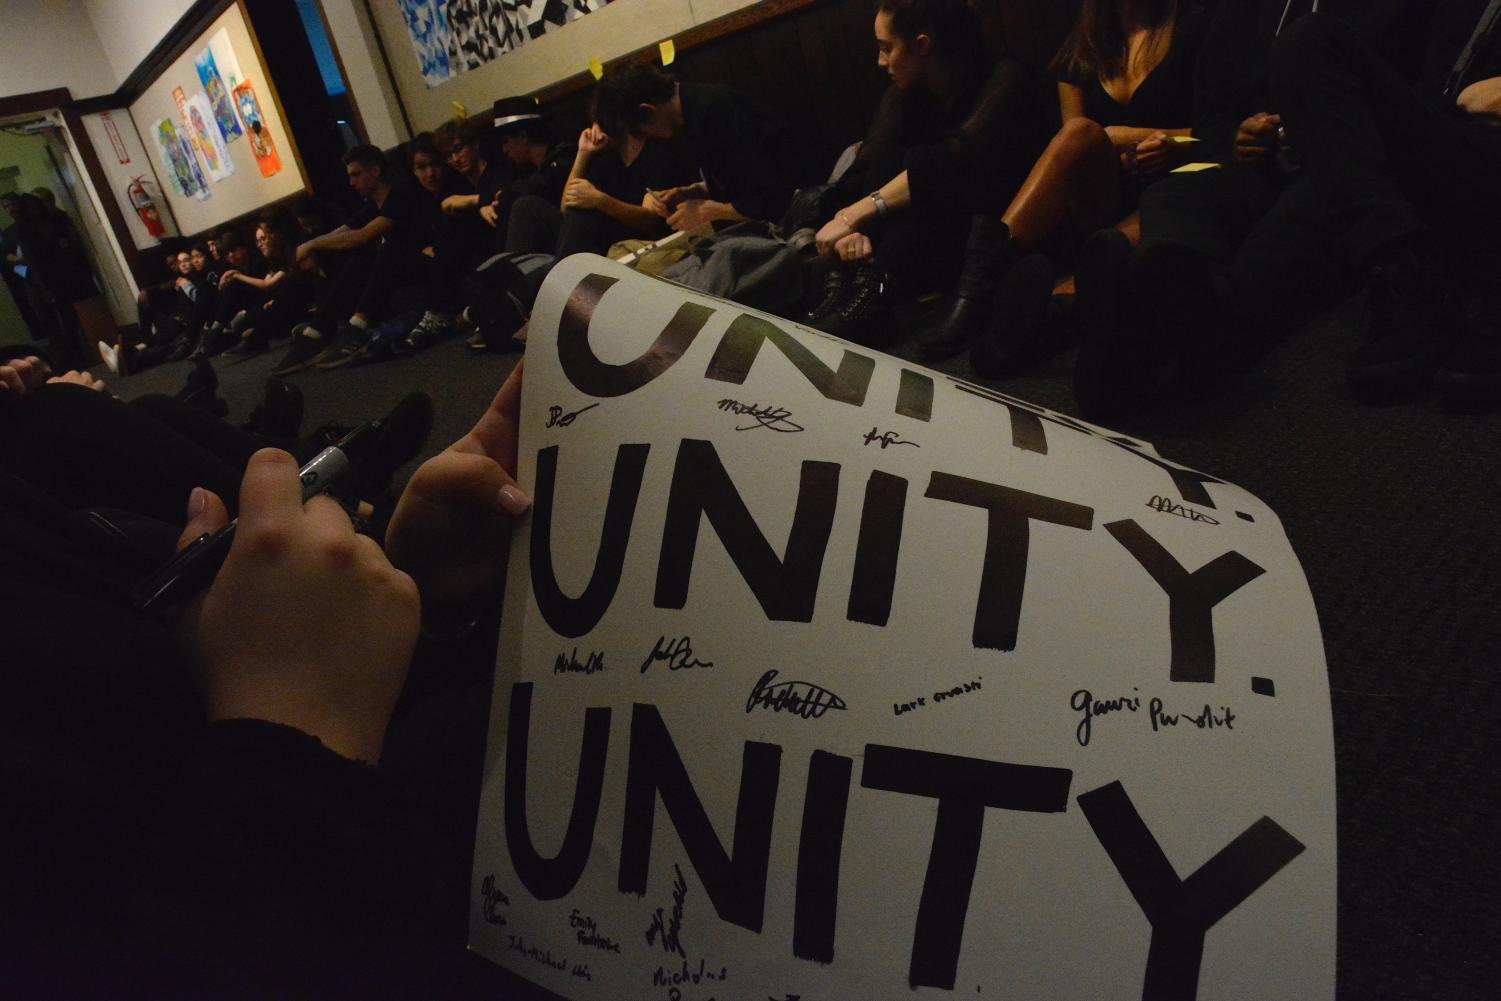 During a sit-in on Friday, January 18, Umoja, the affinity group for students of color, asked students sign posters and write notes about what they wanted to see in the school.